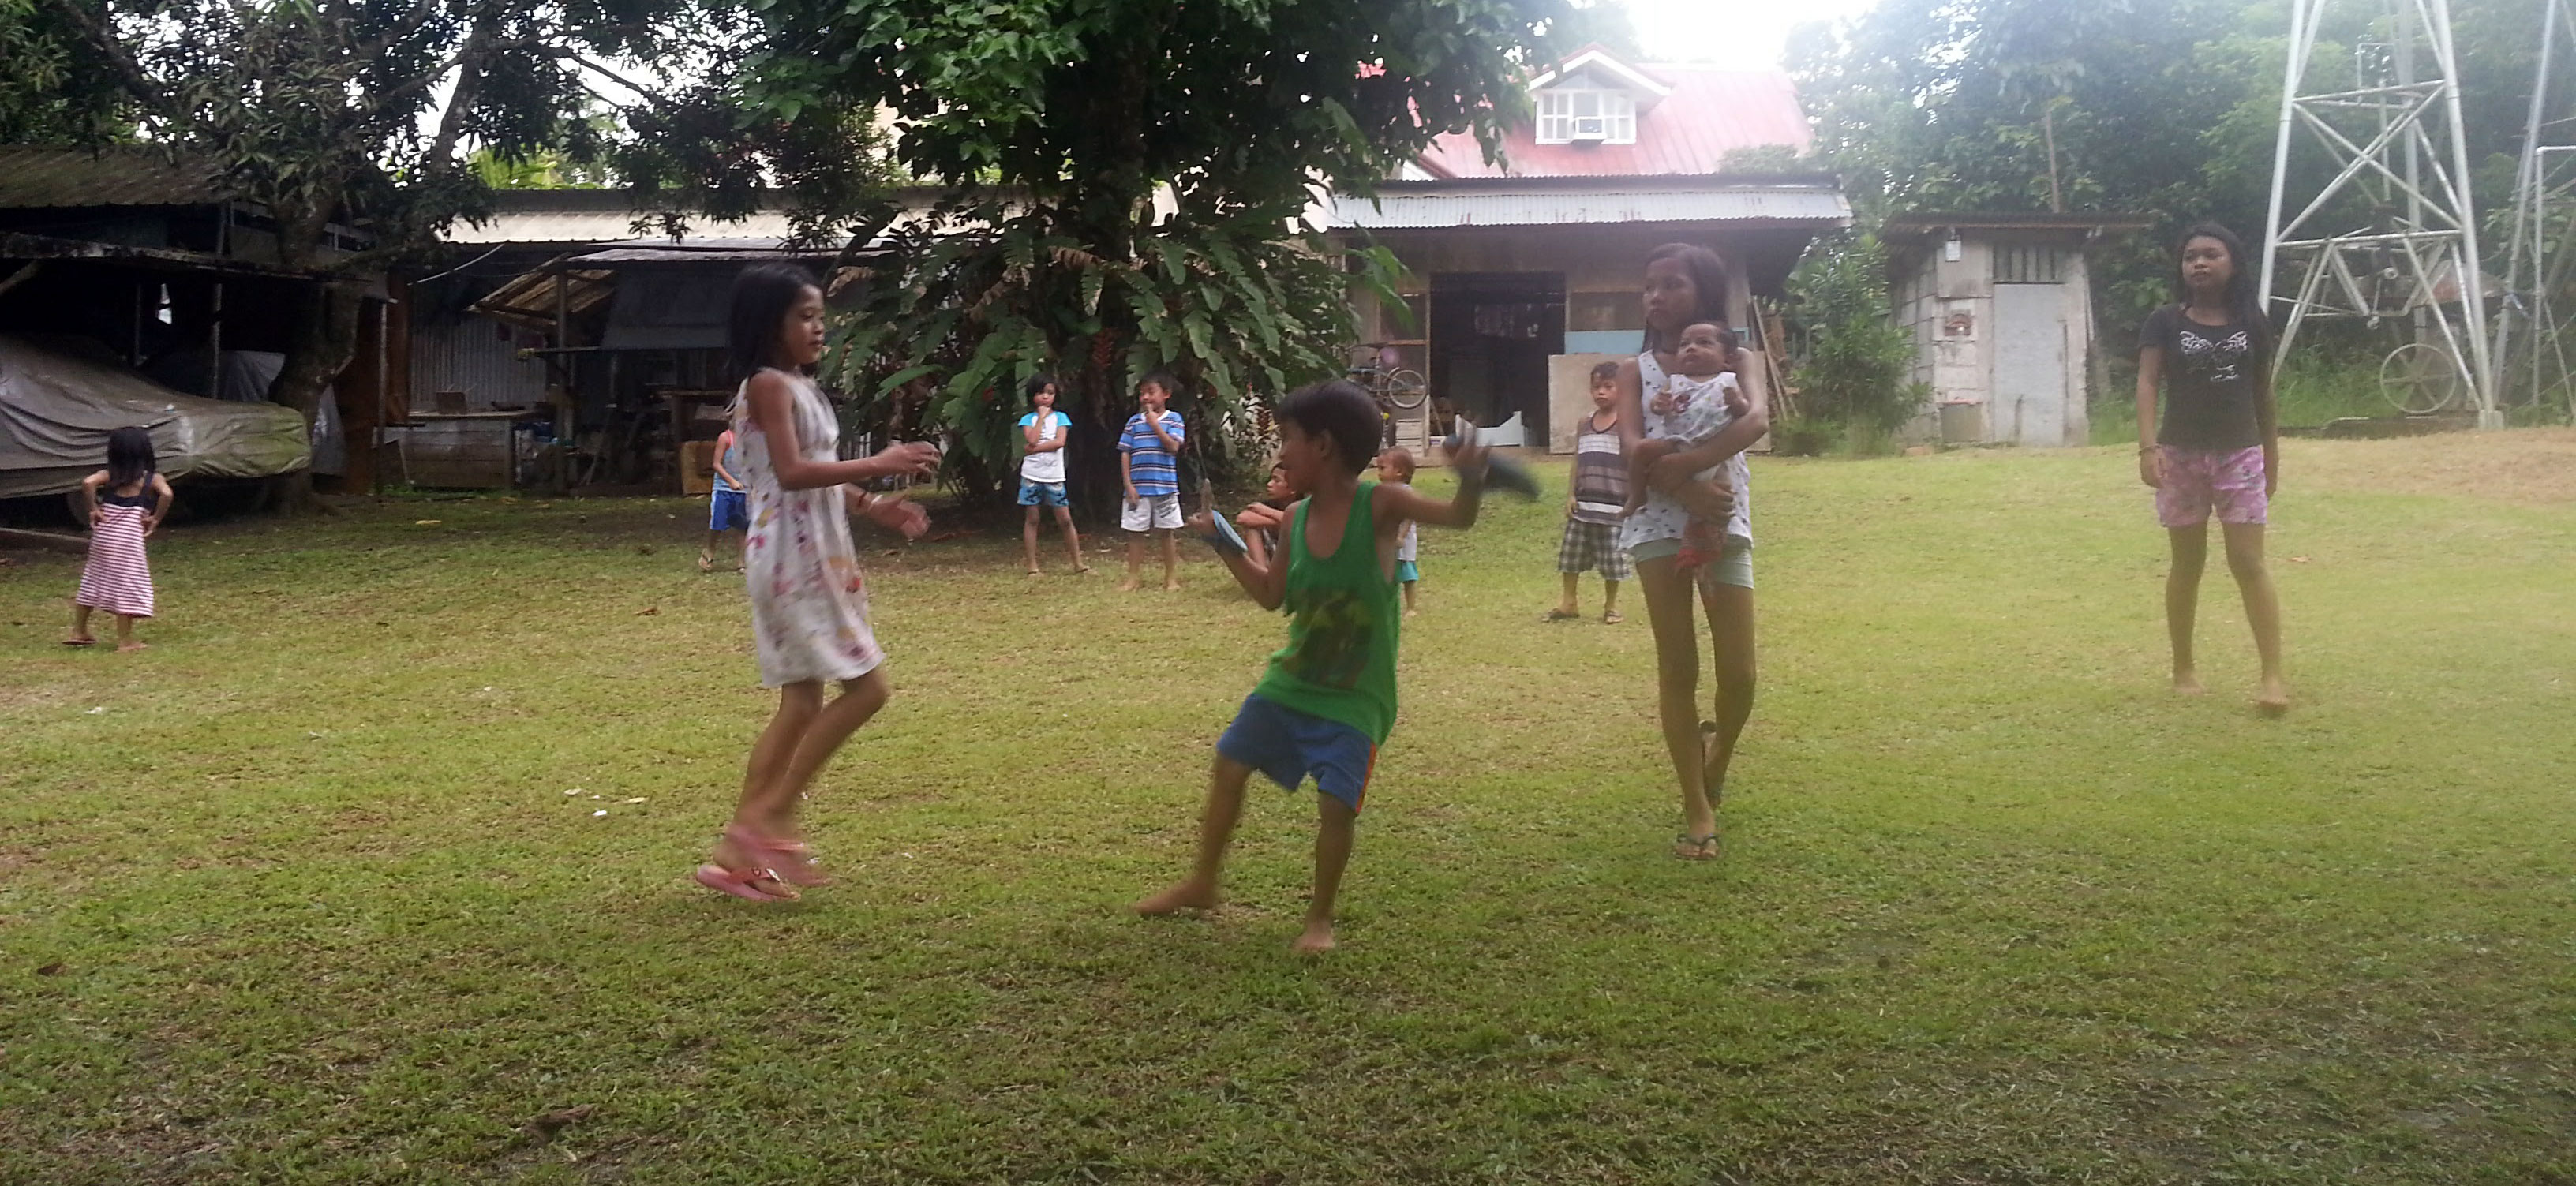 Children relax by playing tag and other games on the grass.